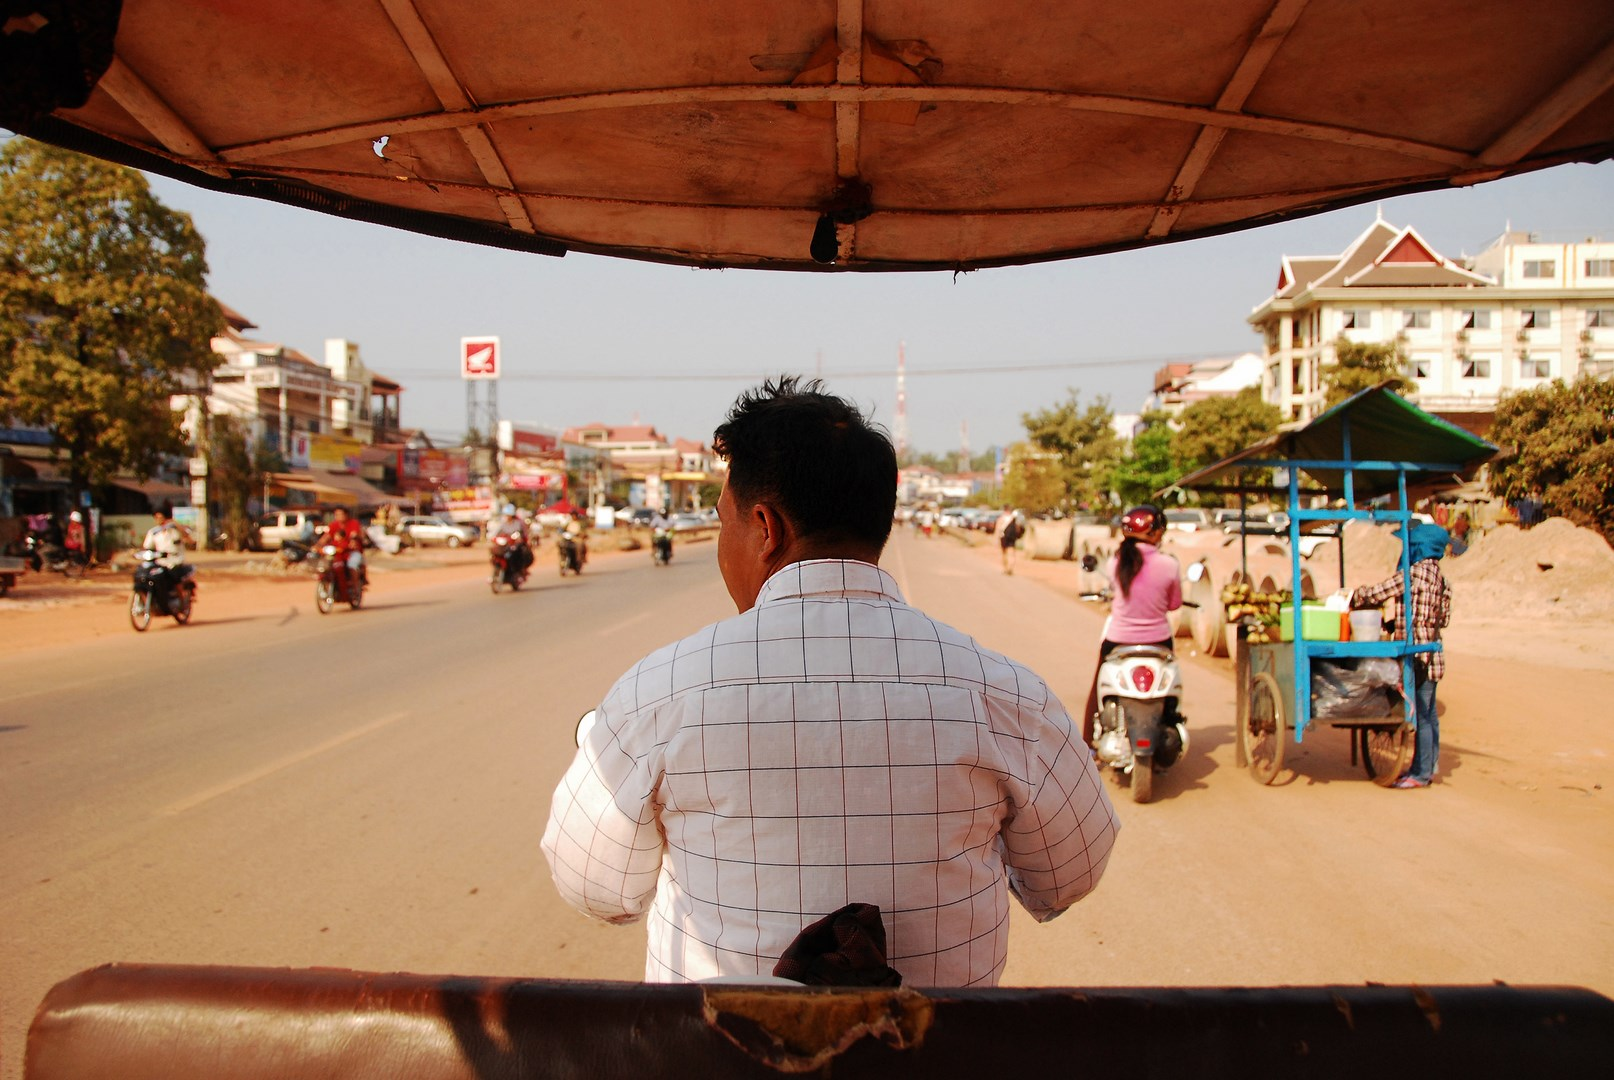 The Real Cambodia - Explored Through Coach, Tuktuk, and Bicycle